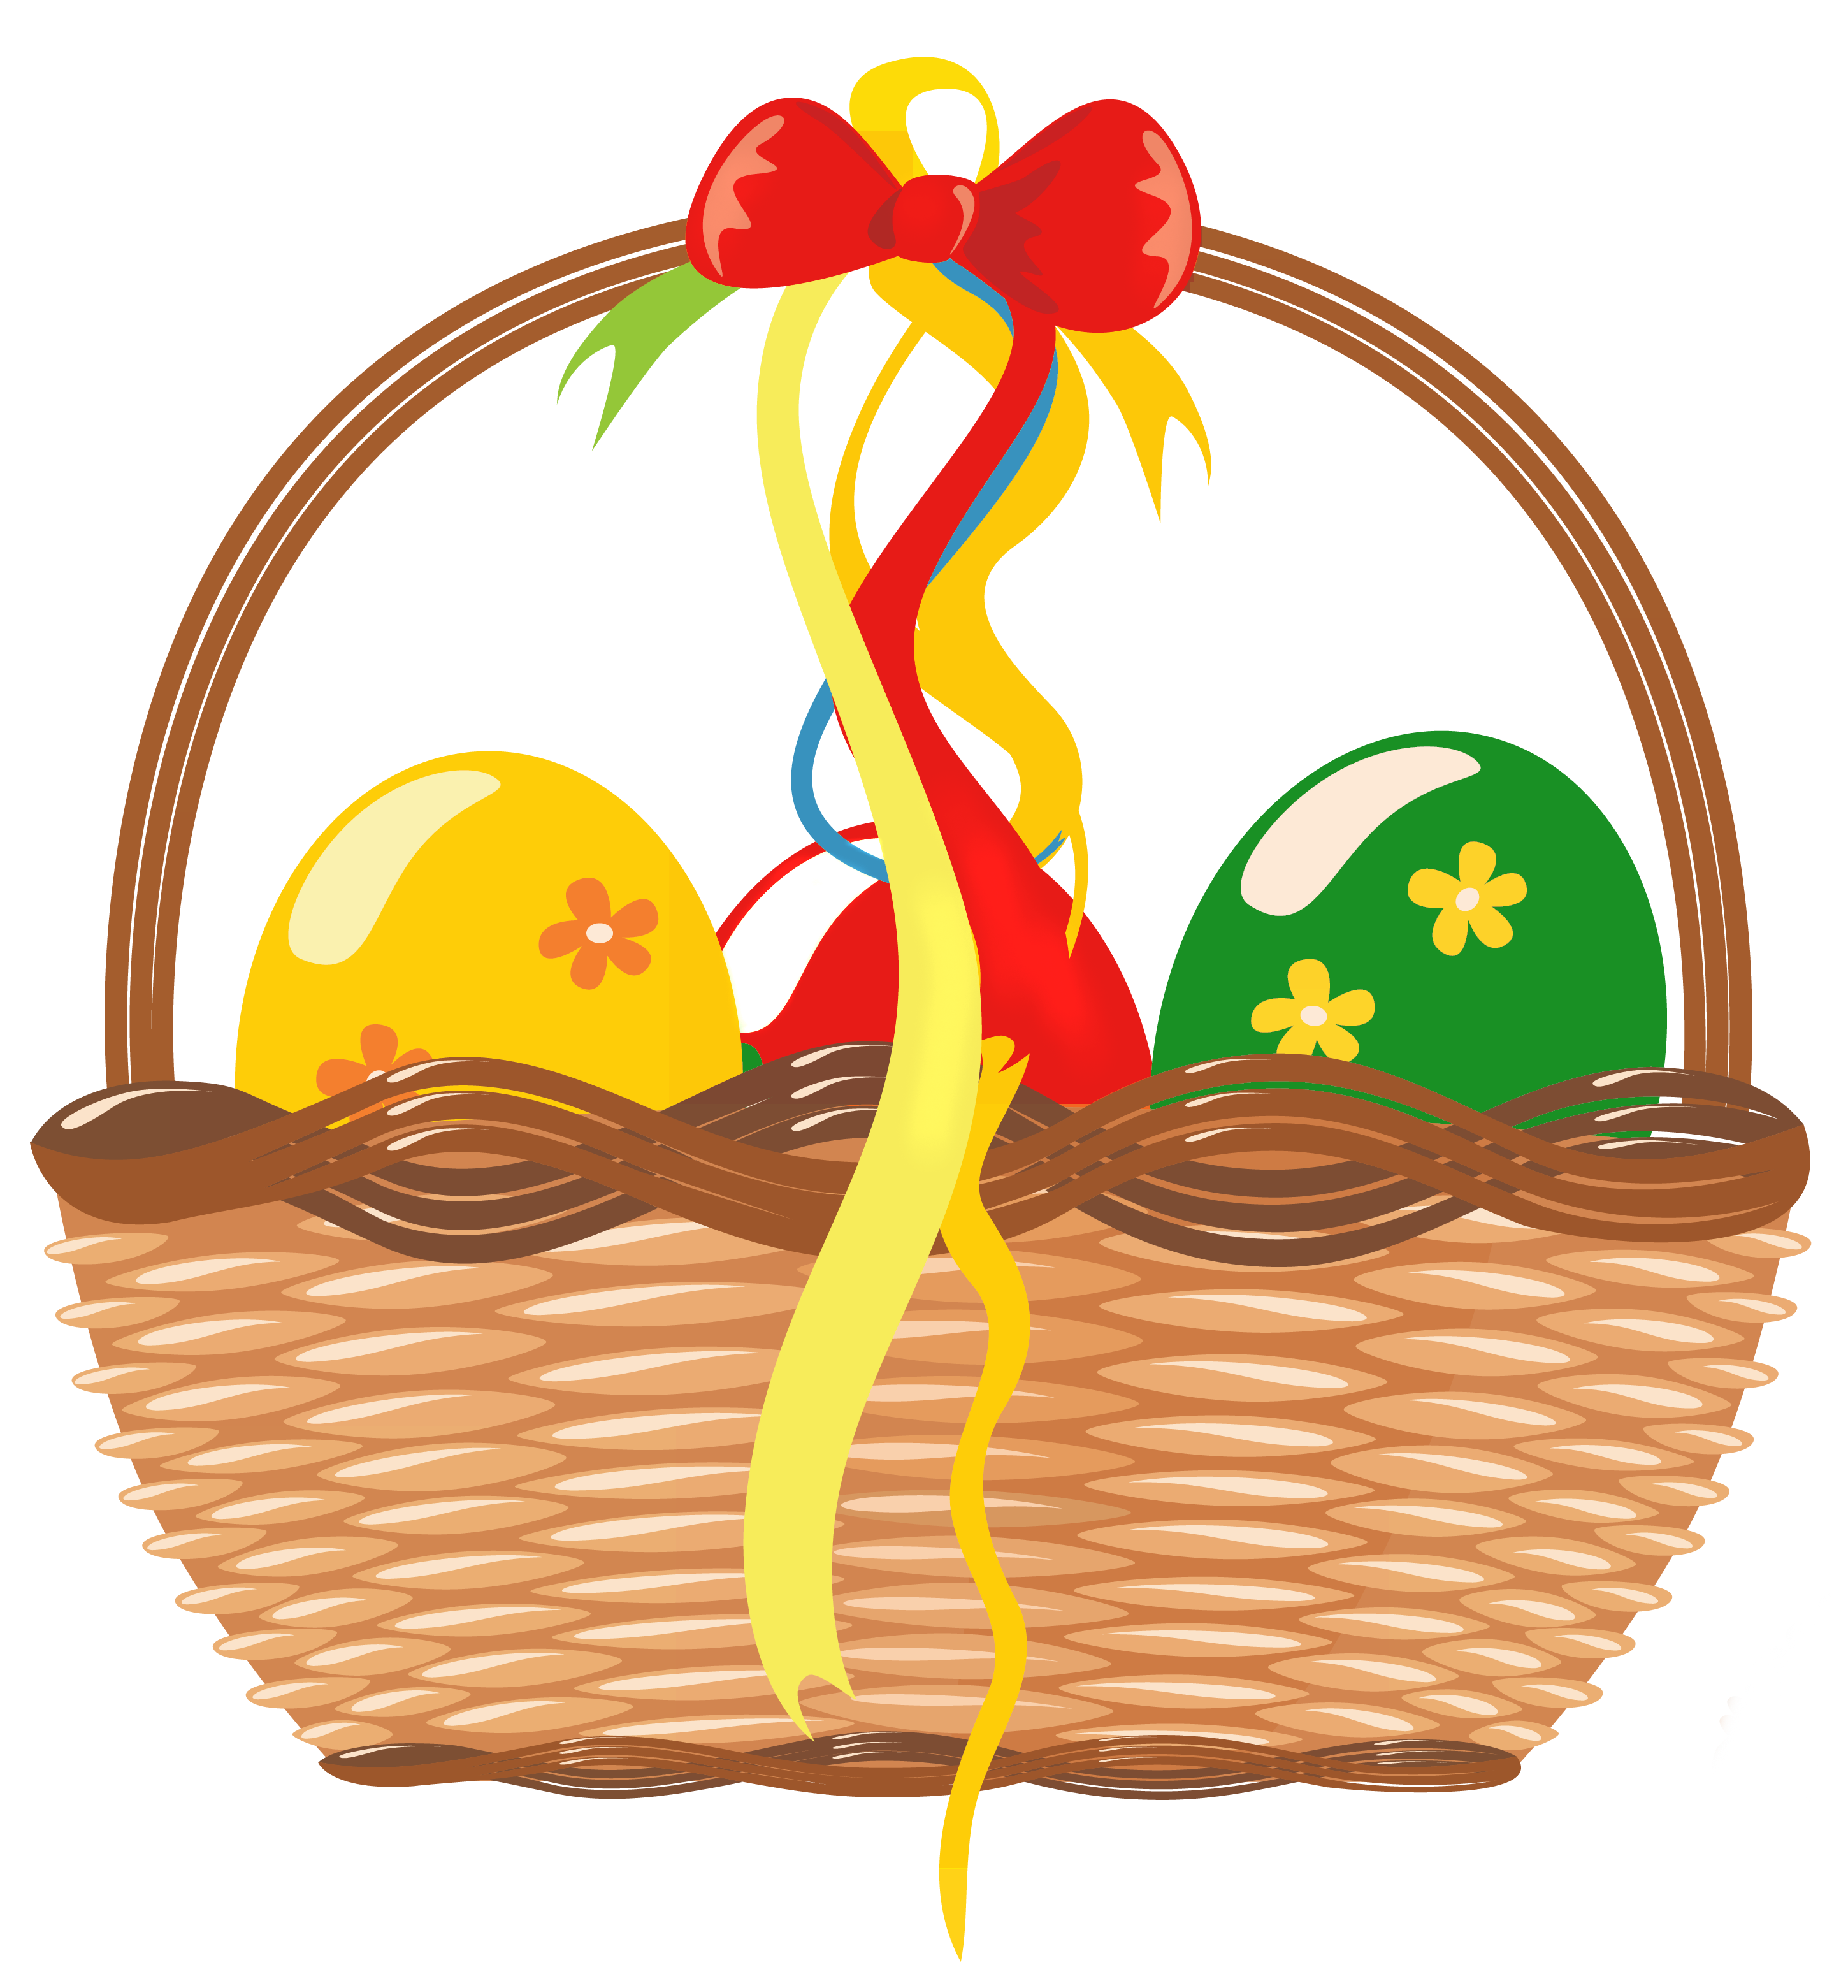 Gift clipart full basket. Easter with eggs png